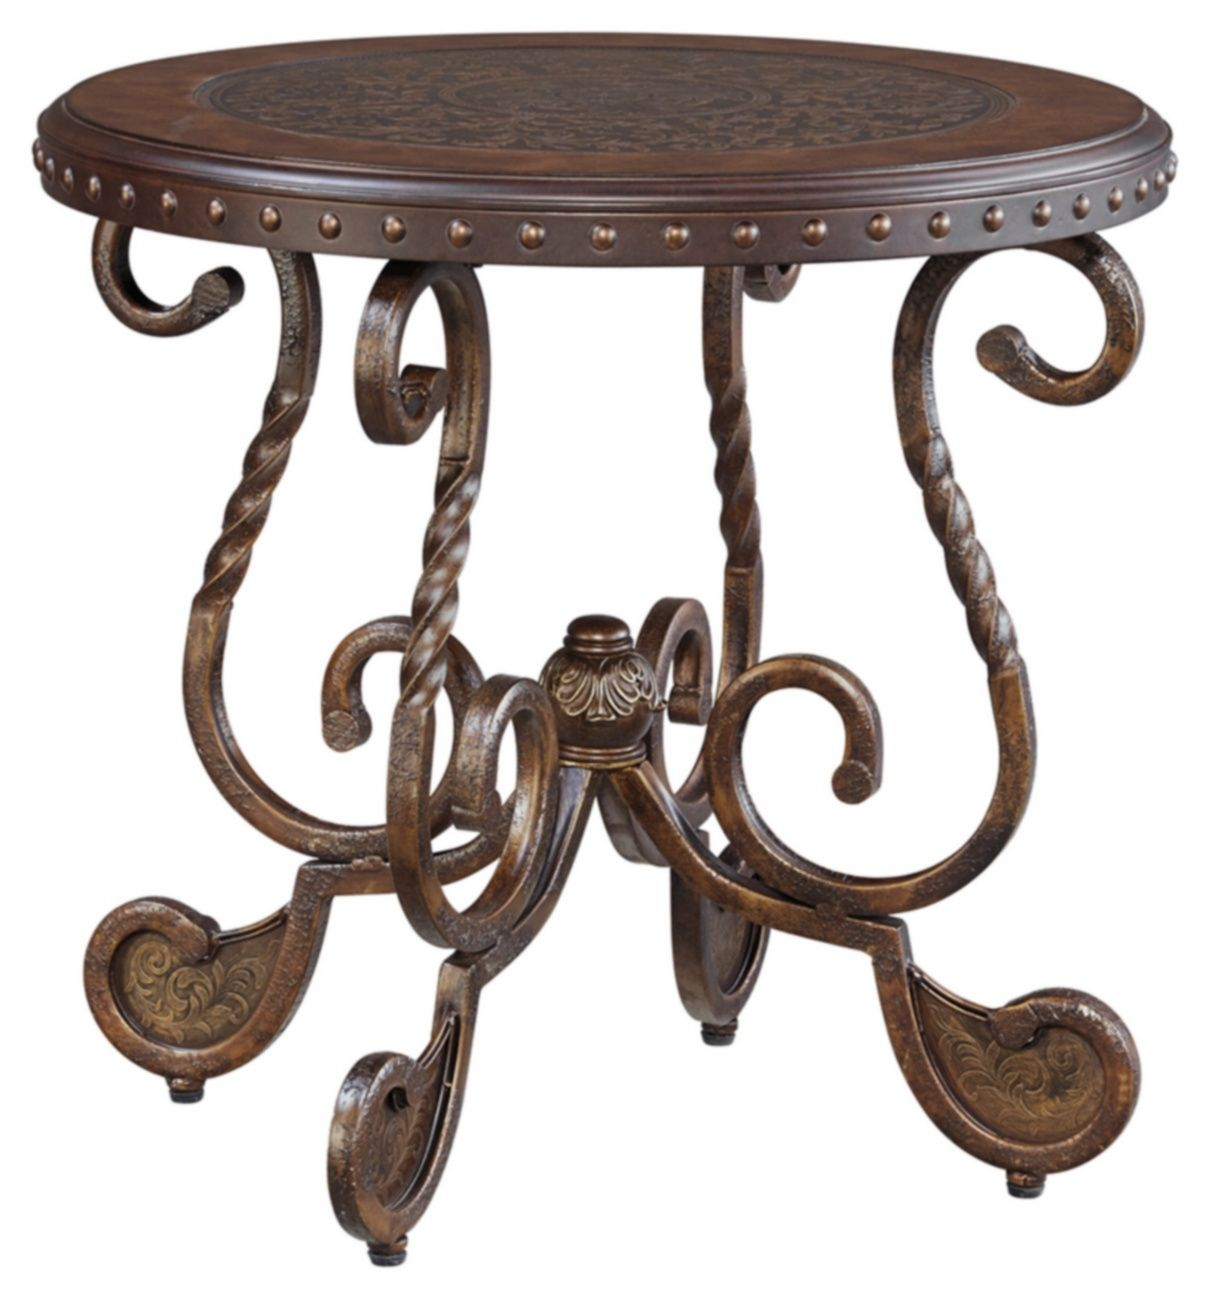 Signature Design Rafferty Round End Table - Ashley Furniture T382-6 #stainedwood